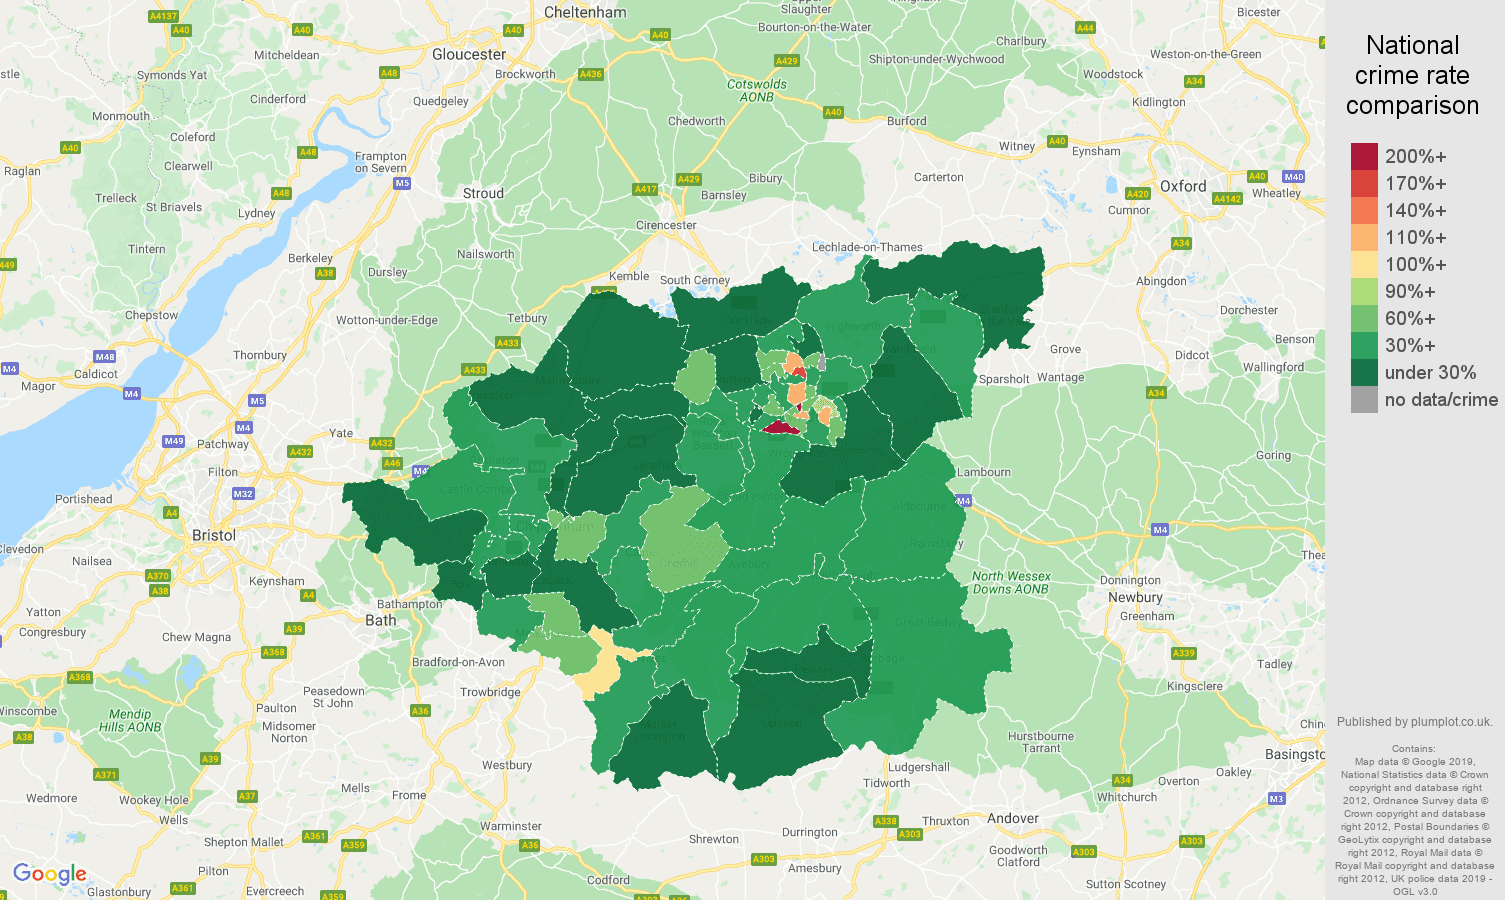 Swindon public order crime rate comparison map